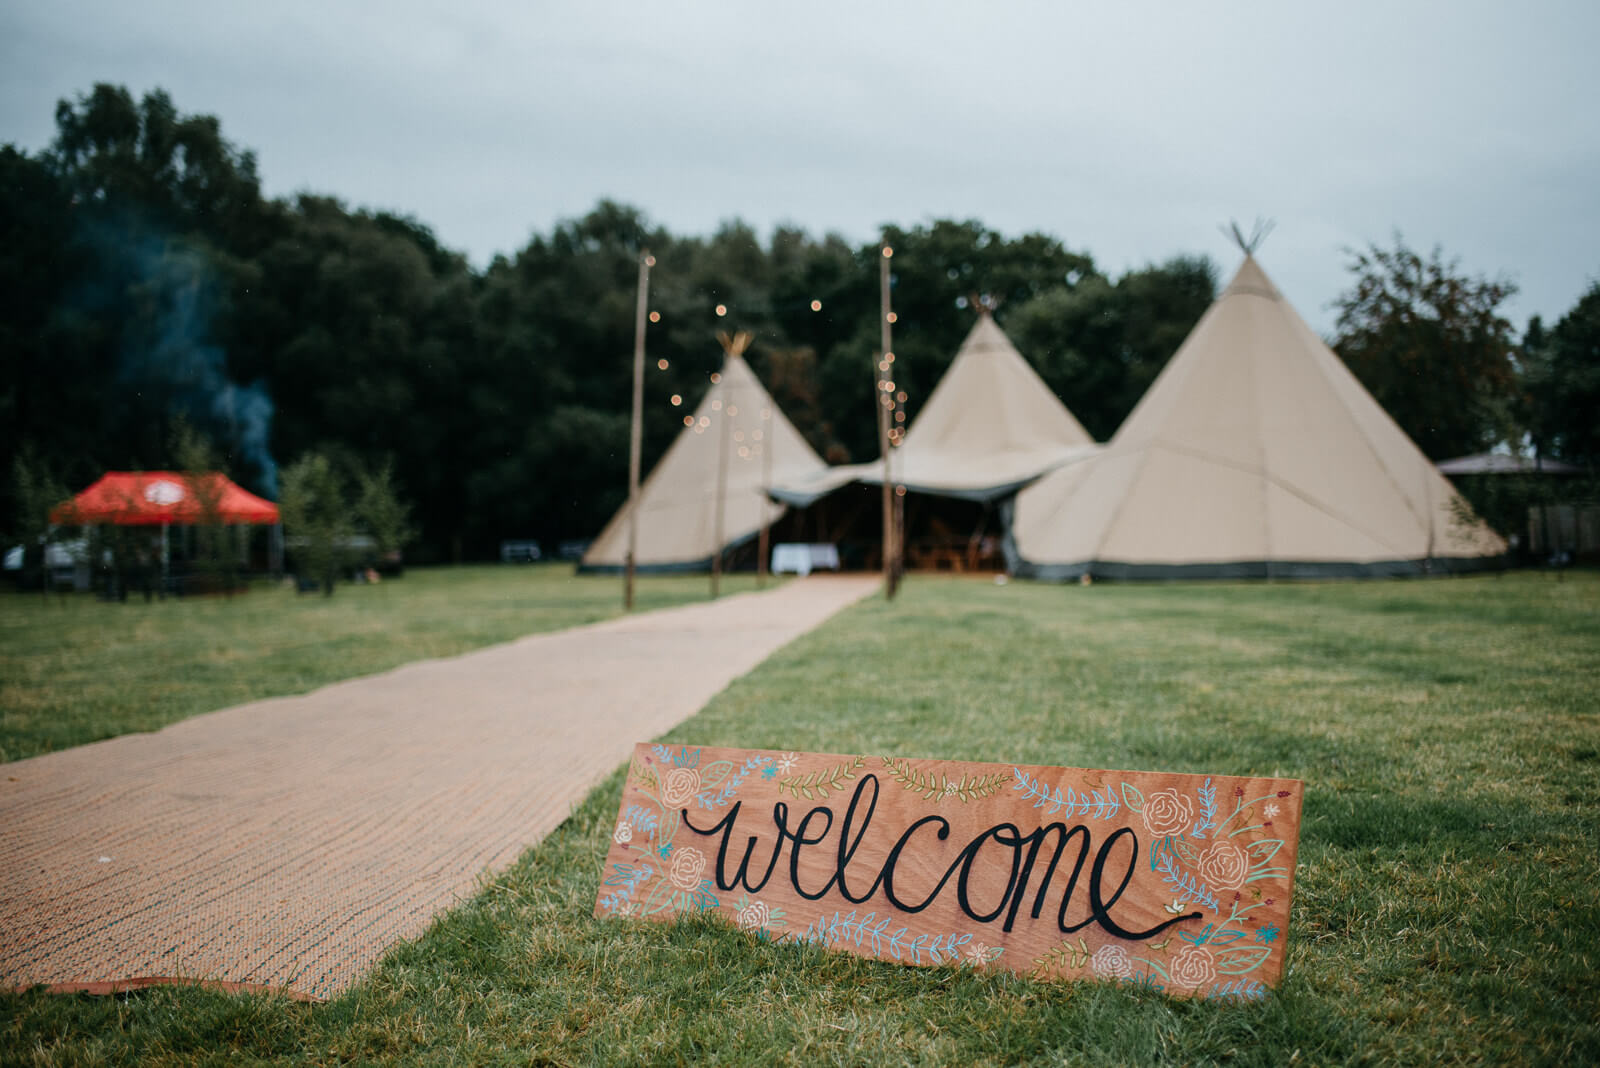 Wooden 'welcome' sign infront of tipi with festoon lit hessian jute walkway at relaxed Shropshire wedding